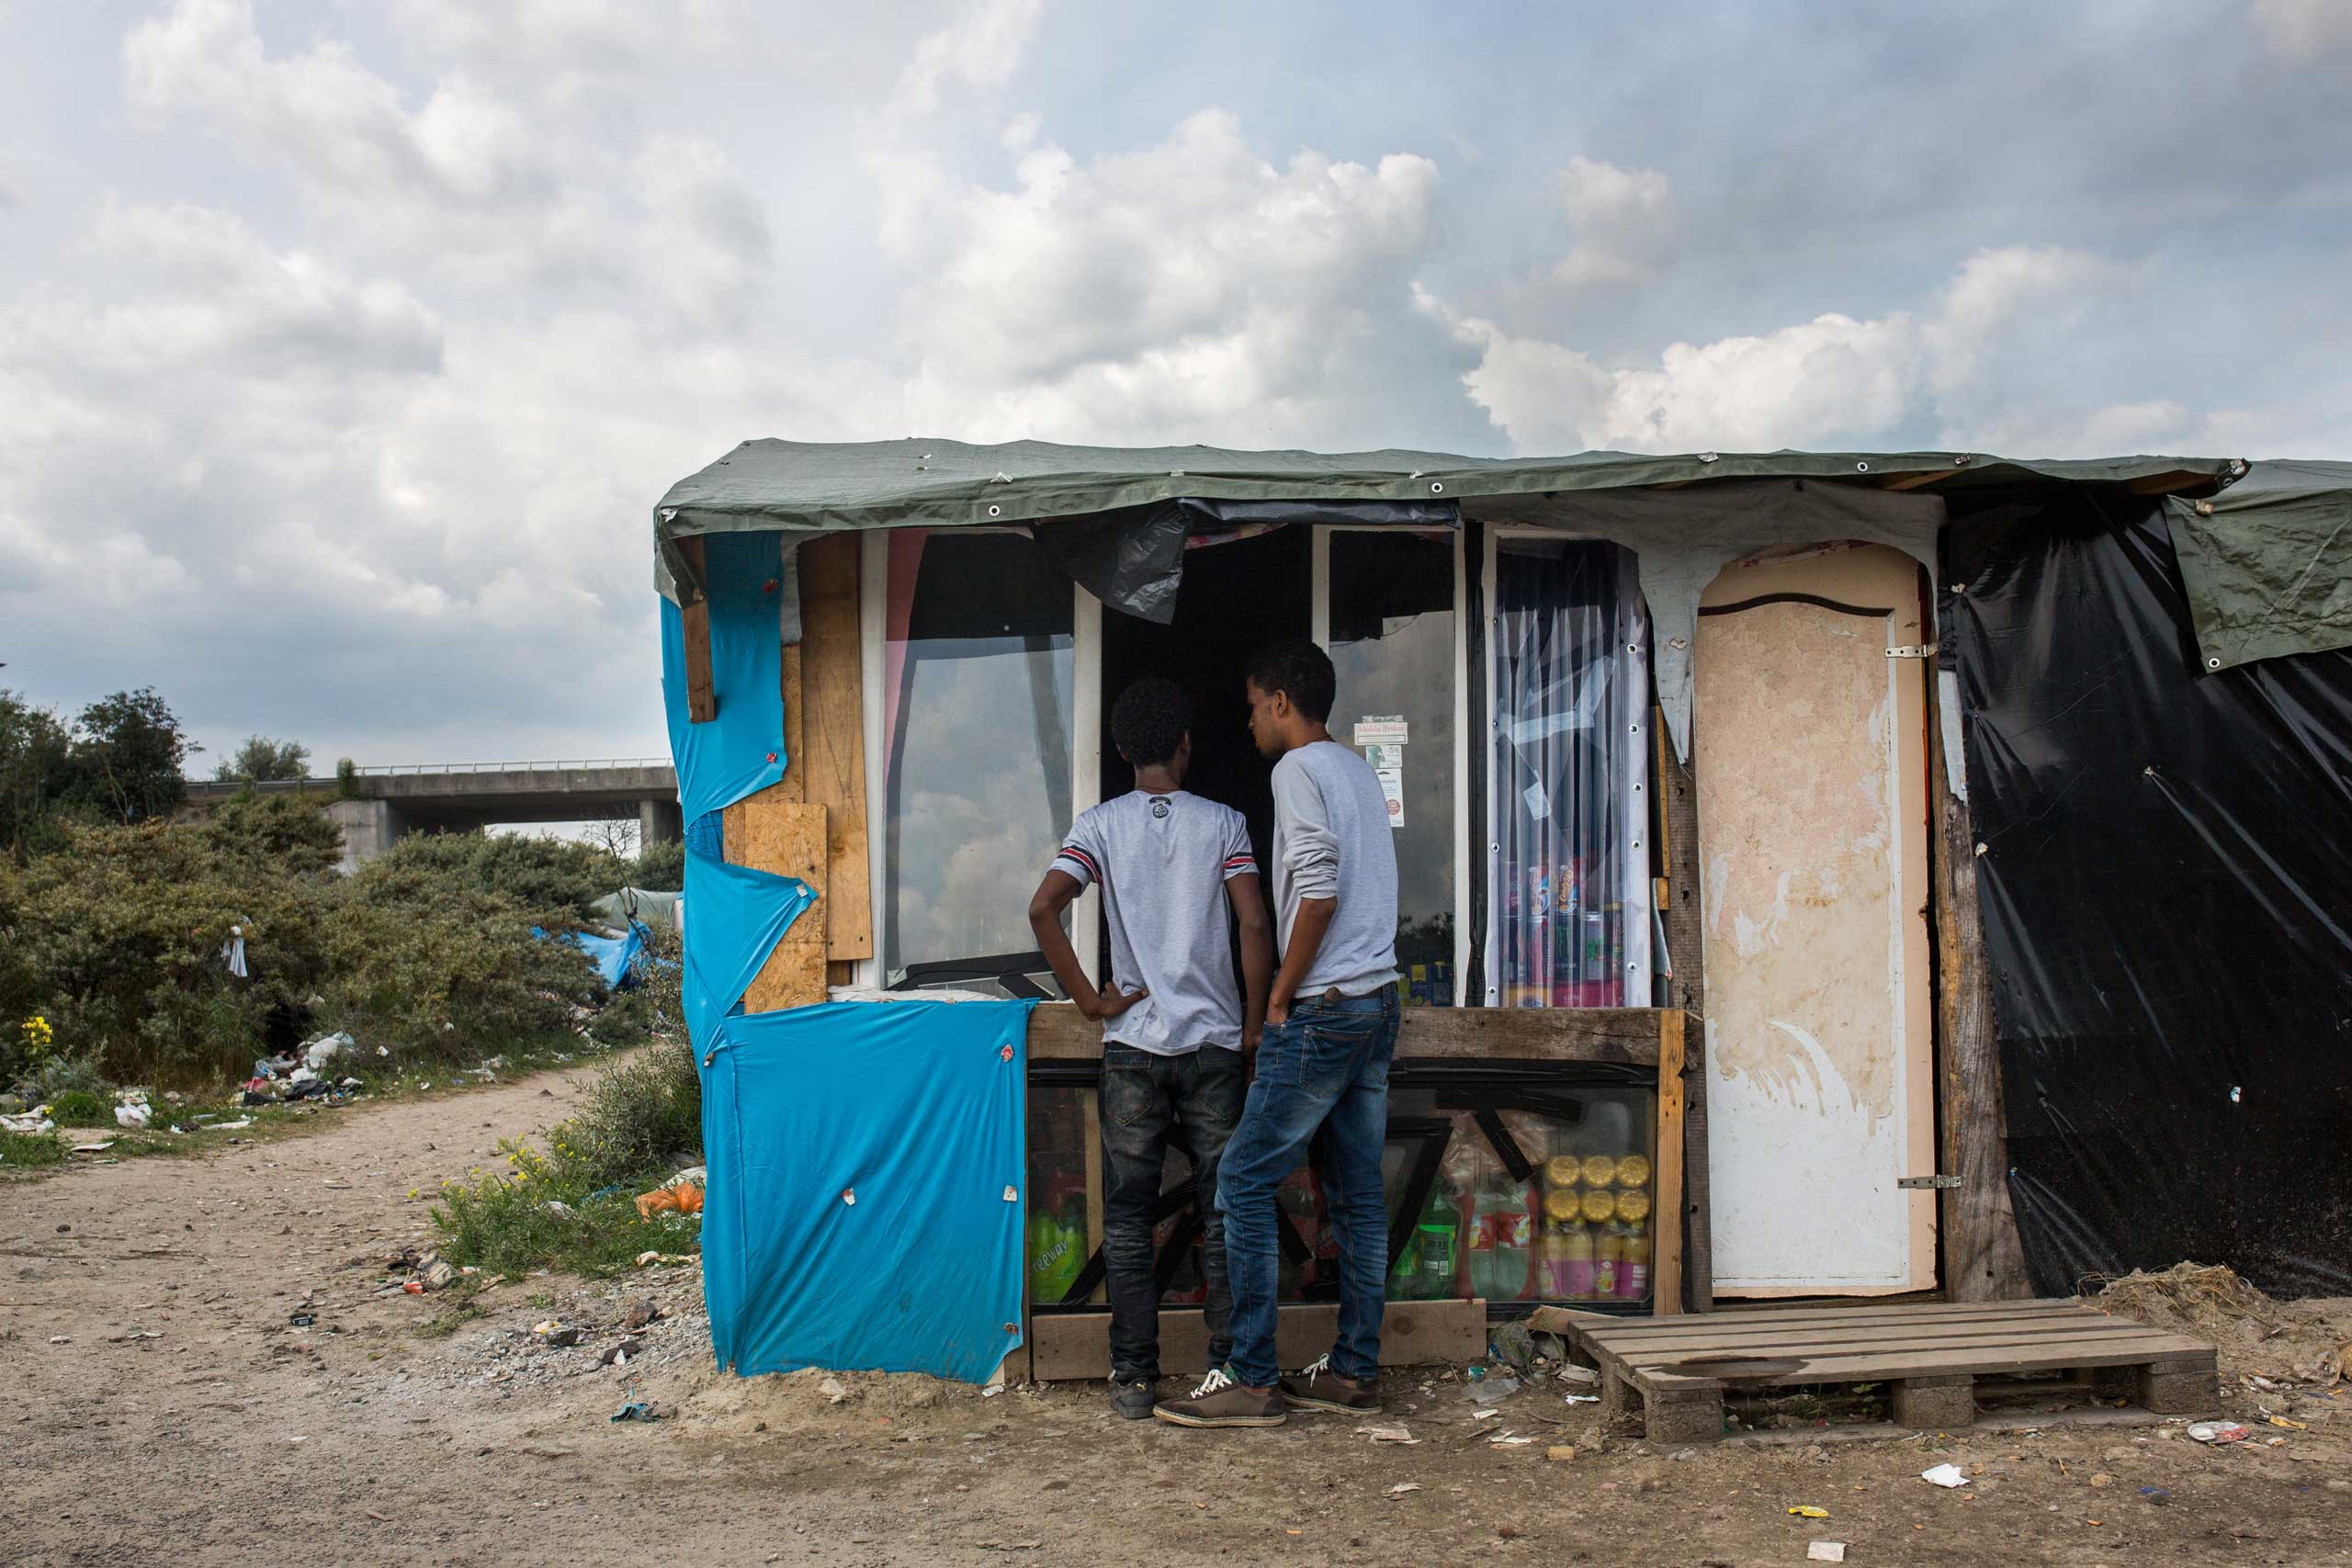 Men buy from a shop run by Afghanis at a make shift camp near the port of Calais, on July 31, 2015.